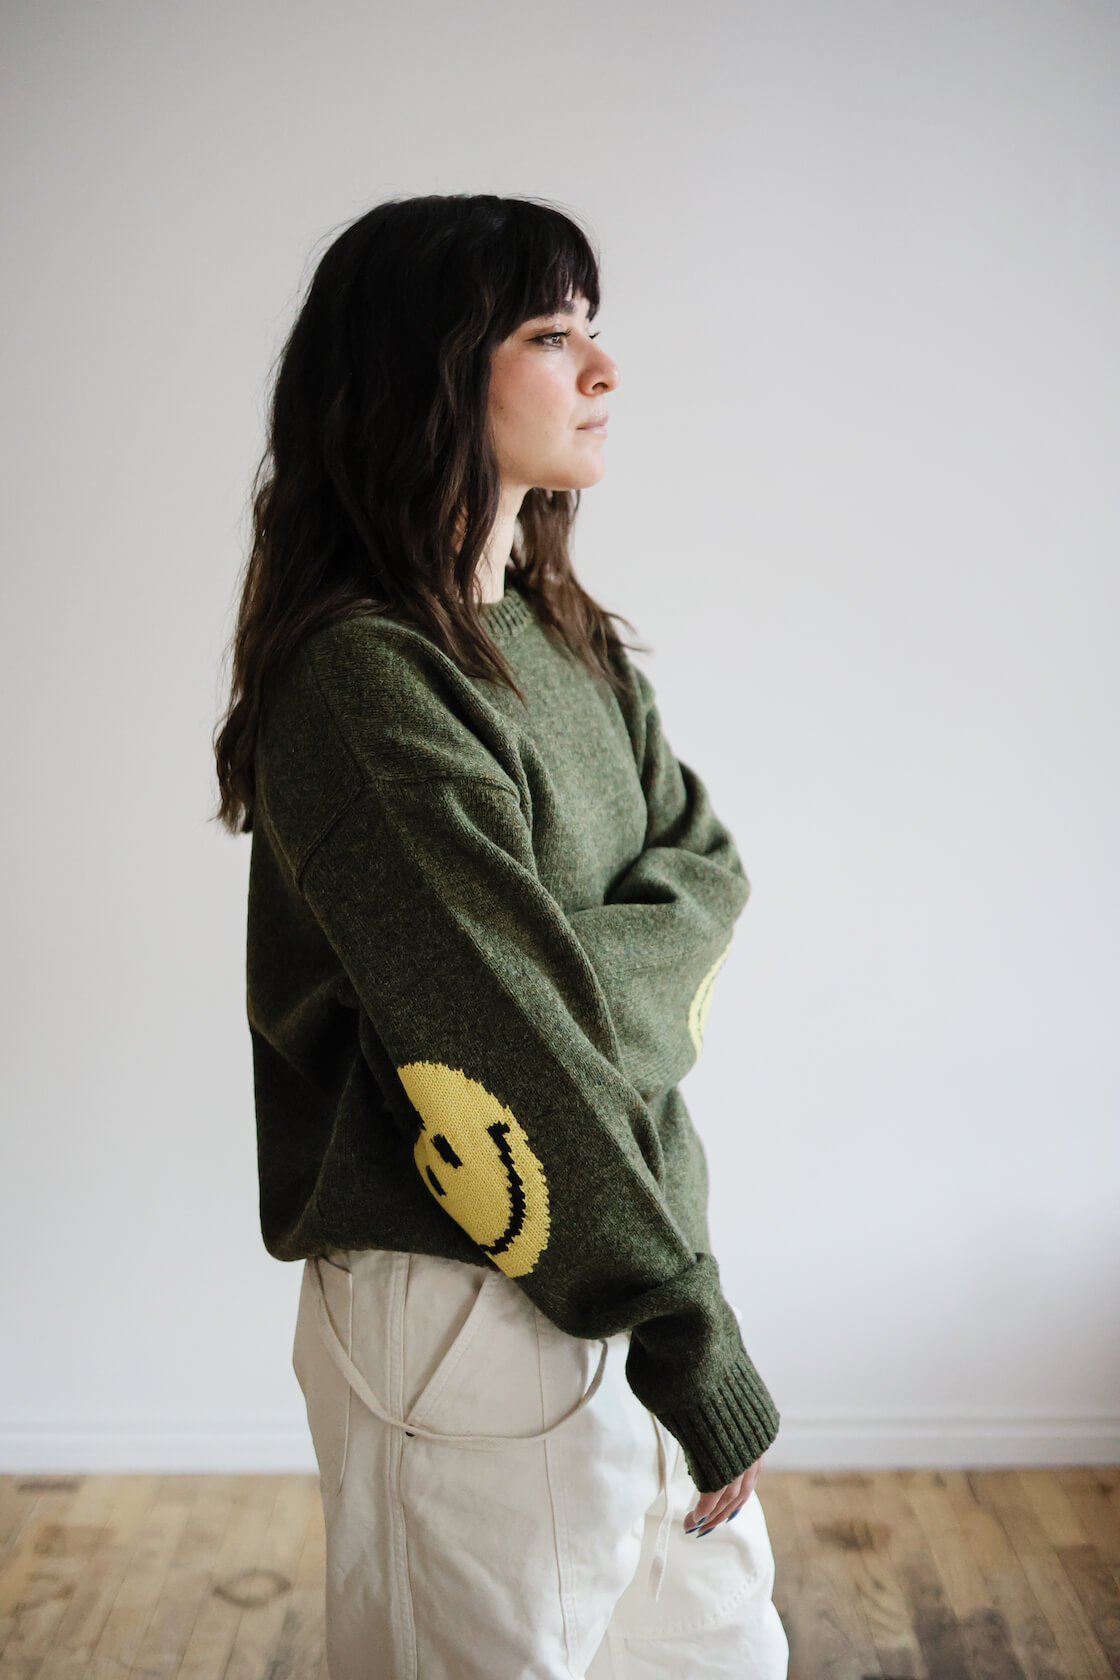 kapital light canvas welder overalls and smilie sweater on body